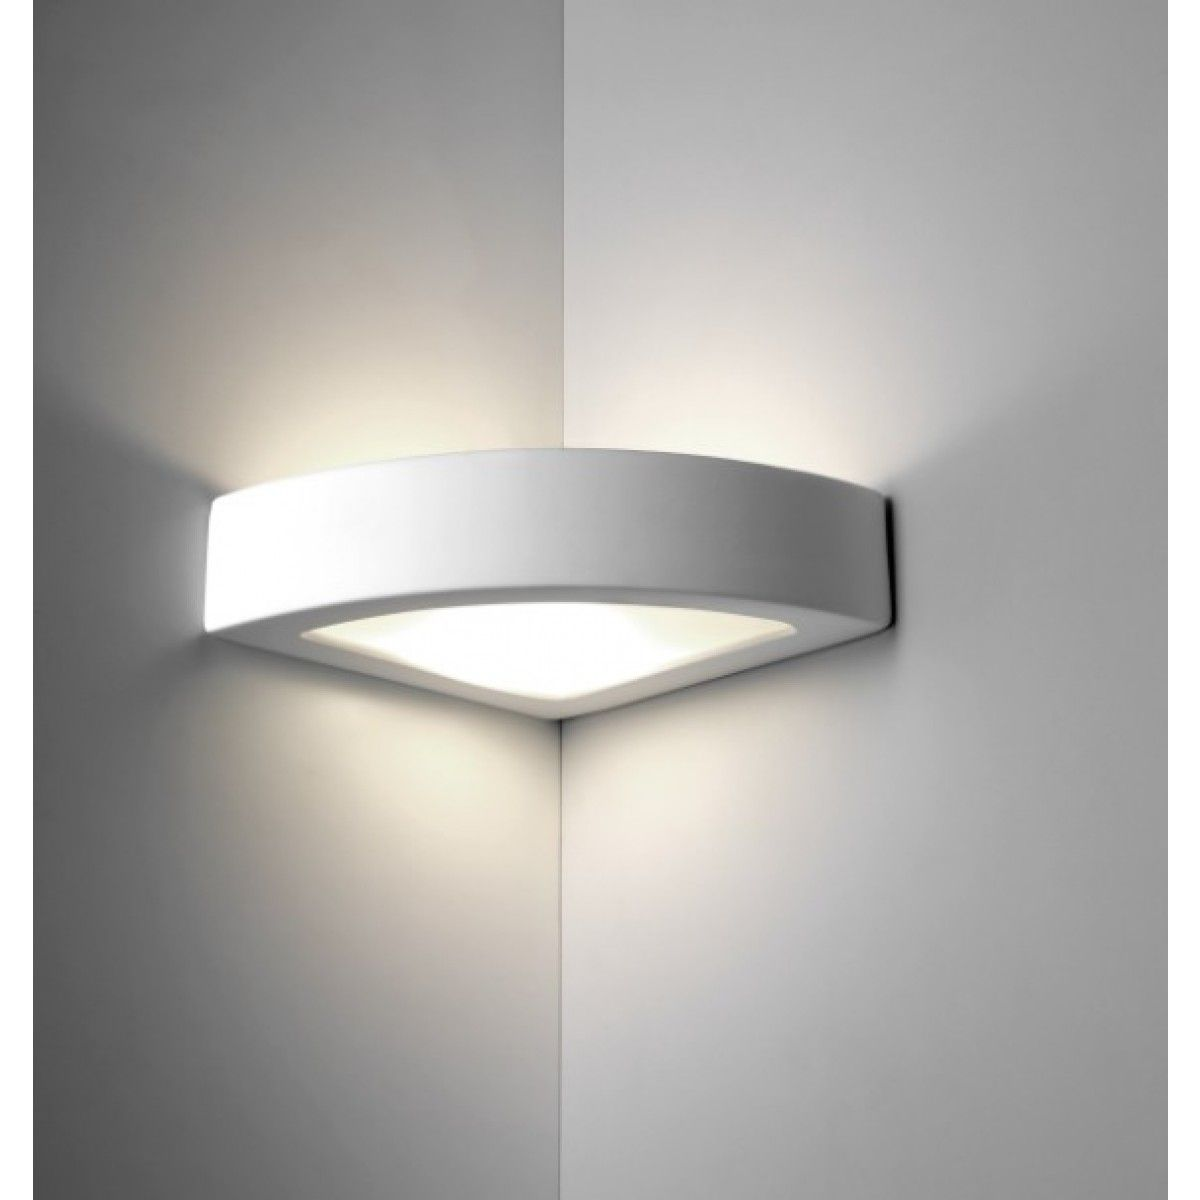 Appliques Murales D'angle Applique D Angle 8056 By Belfiore Lighting Lighting Deluxe